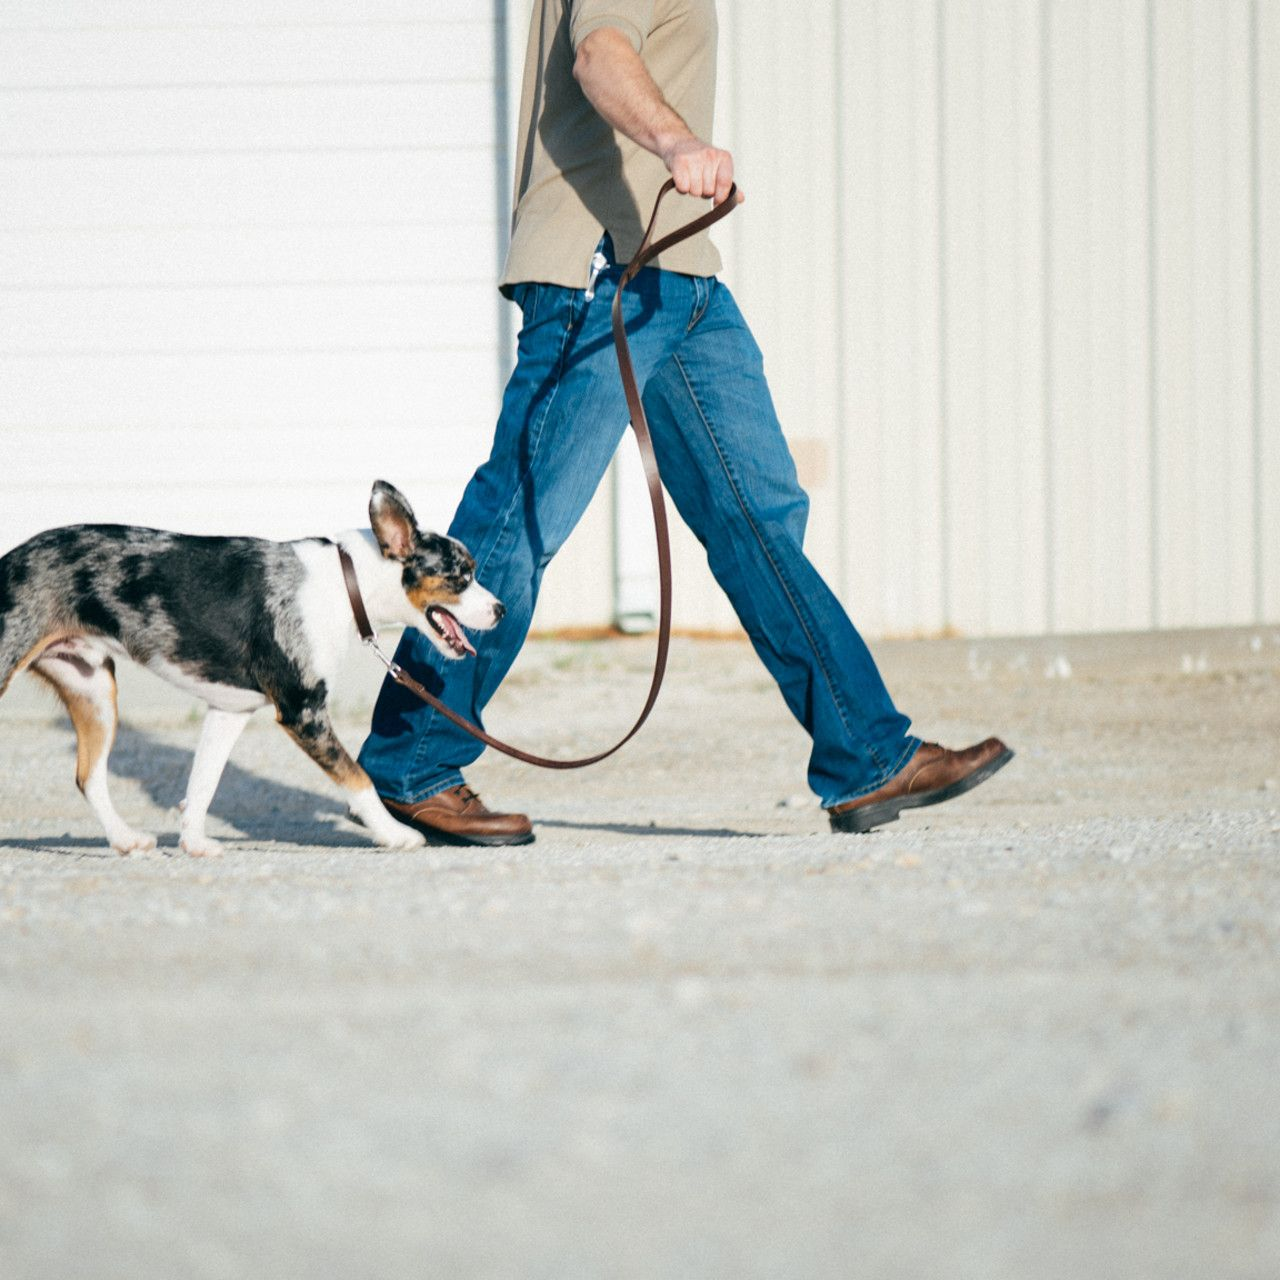 White-black dog run on a leather dog leash in dark coffee brown leather by a man in blue trousers